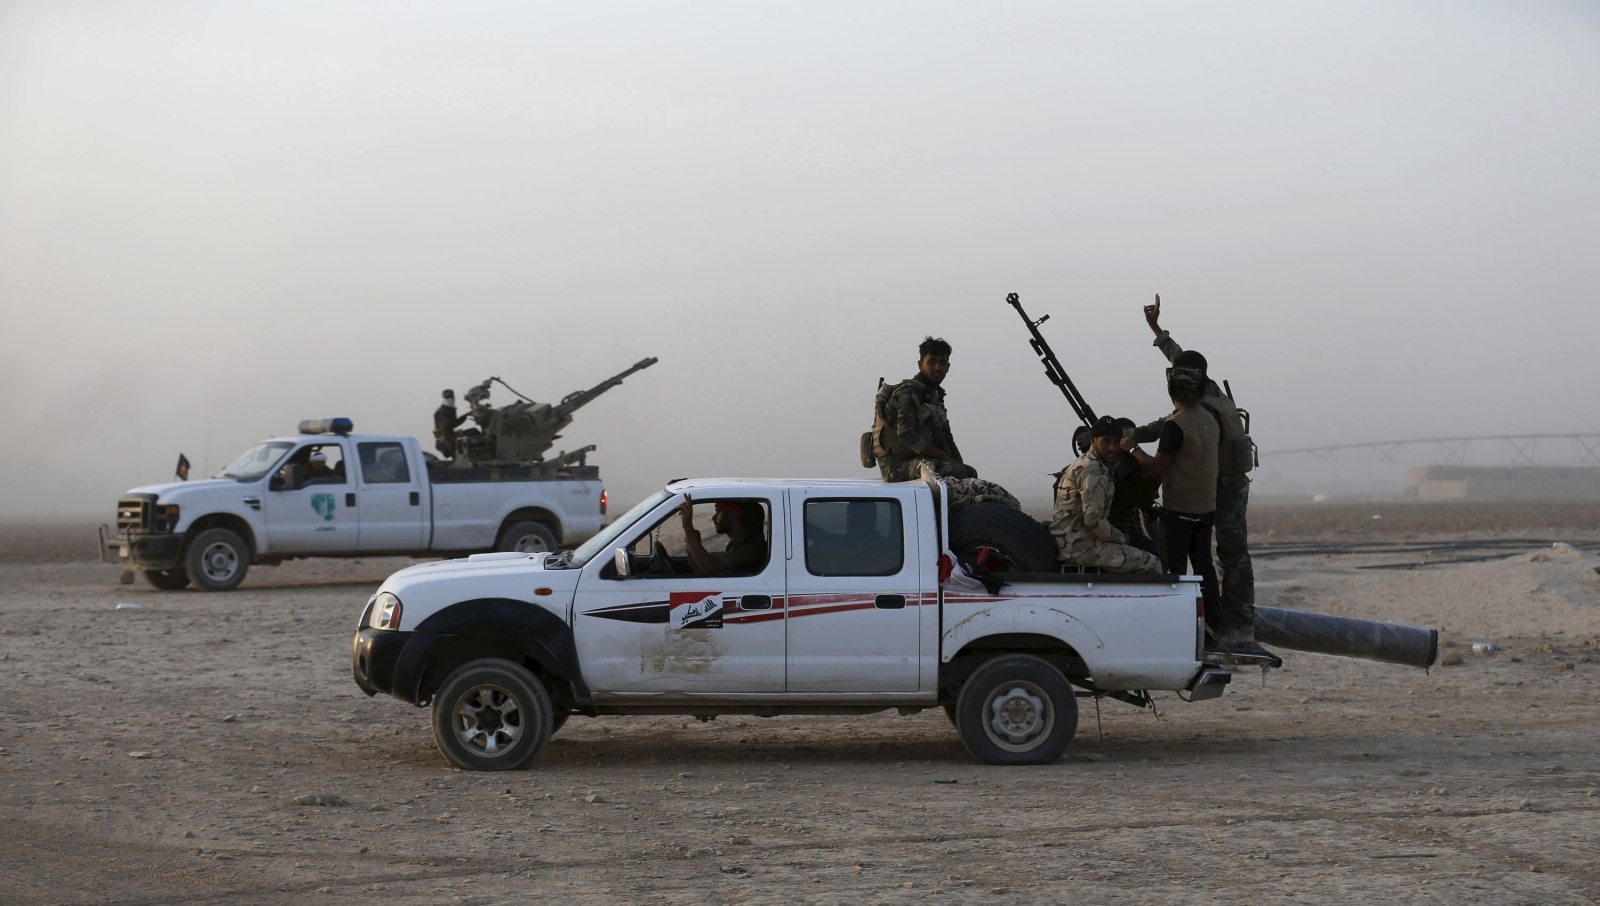 Shi'ite fighters ride vehicles